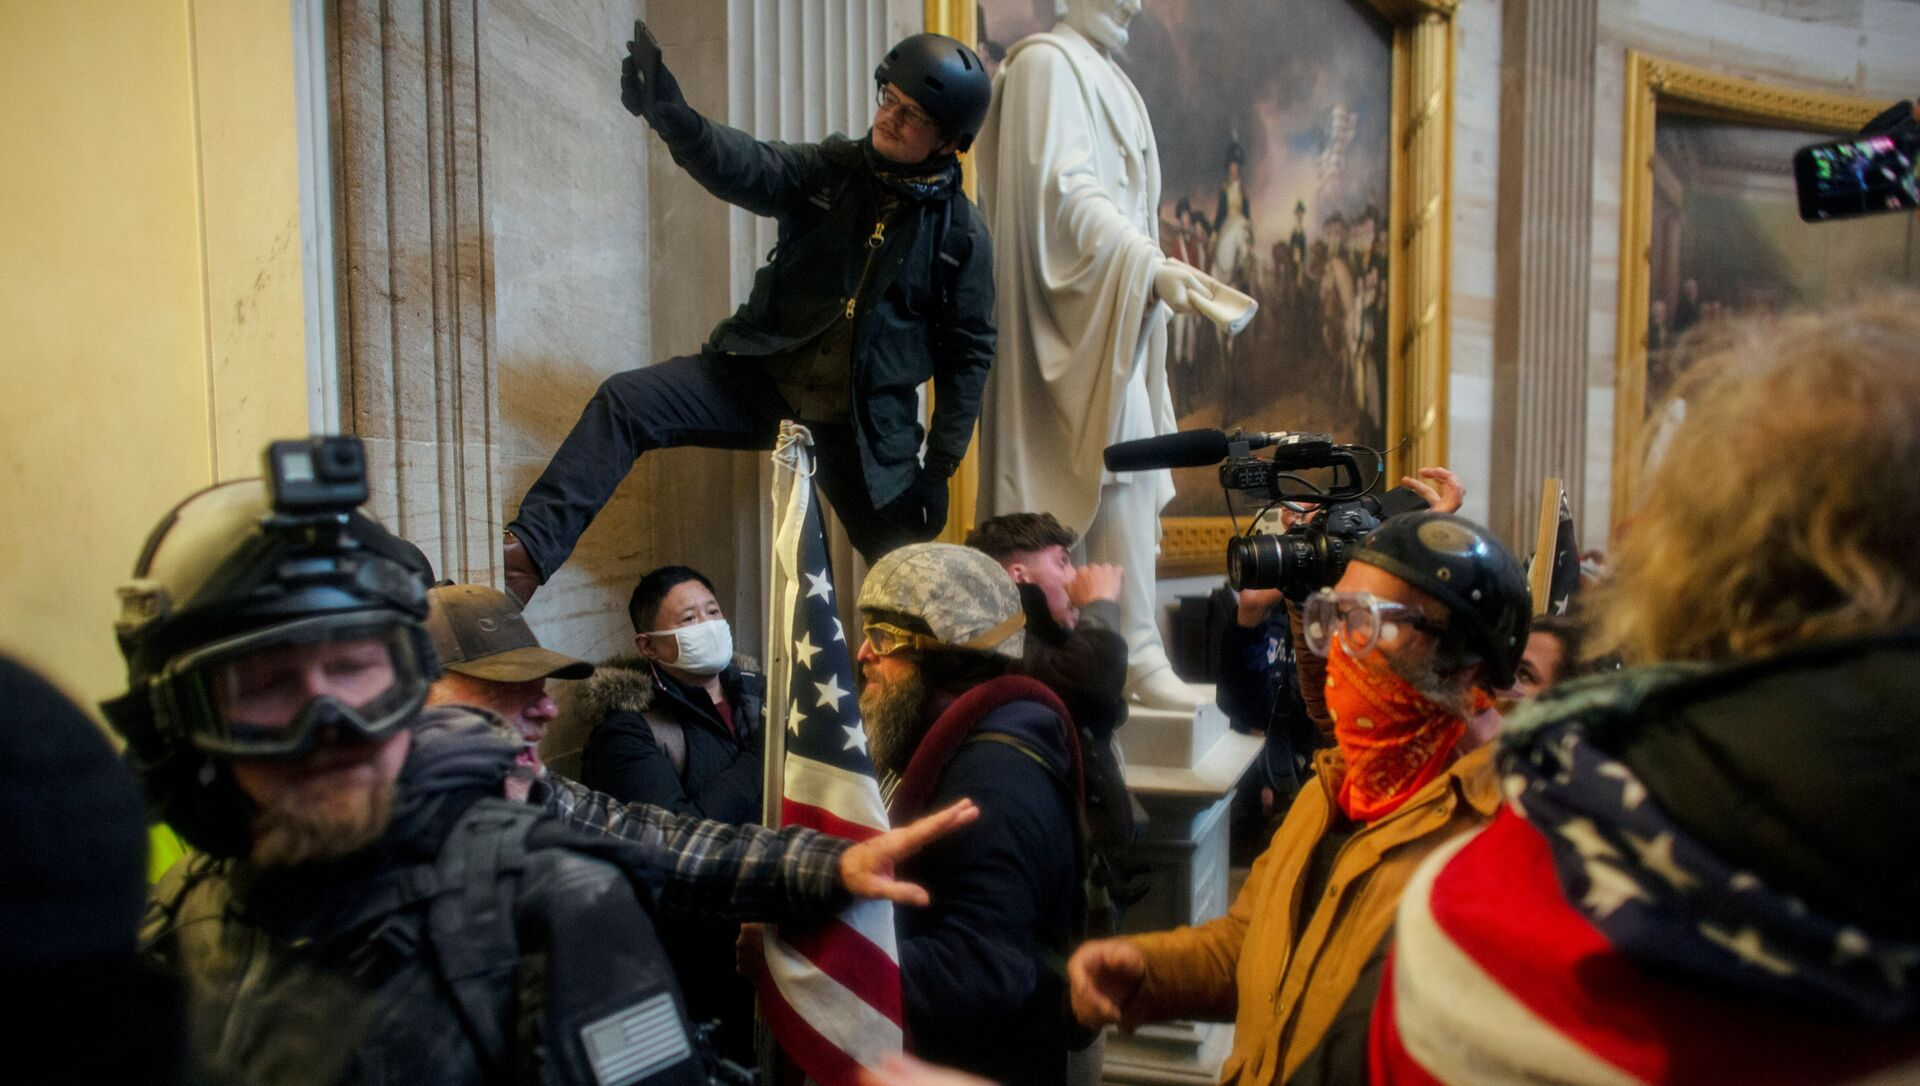 FILE PHOTO: Pro-Trump protesters storm the U.S. Capitol to contest the certification of the 2020 U.S. presidential election results by the U.S. Congress, at the U.S. Capitol Building in Washington, DC., 6 January 2021.  - Sputnik International, 1920, 16.06.2021